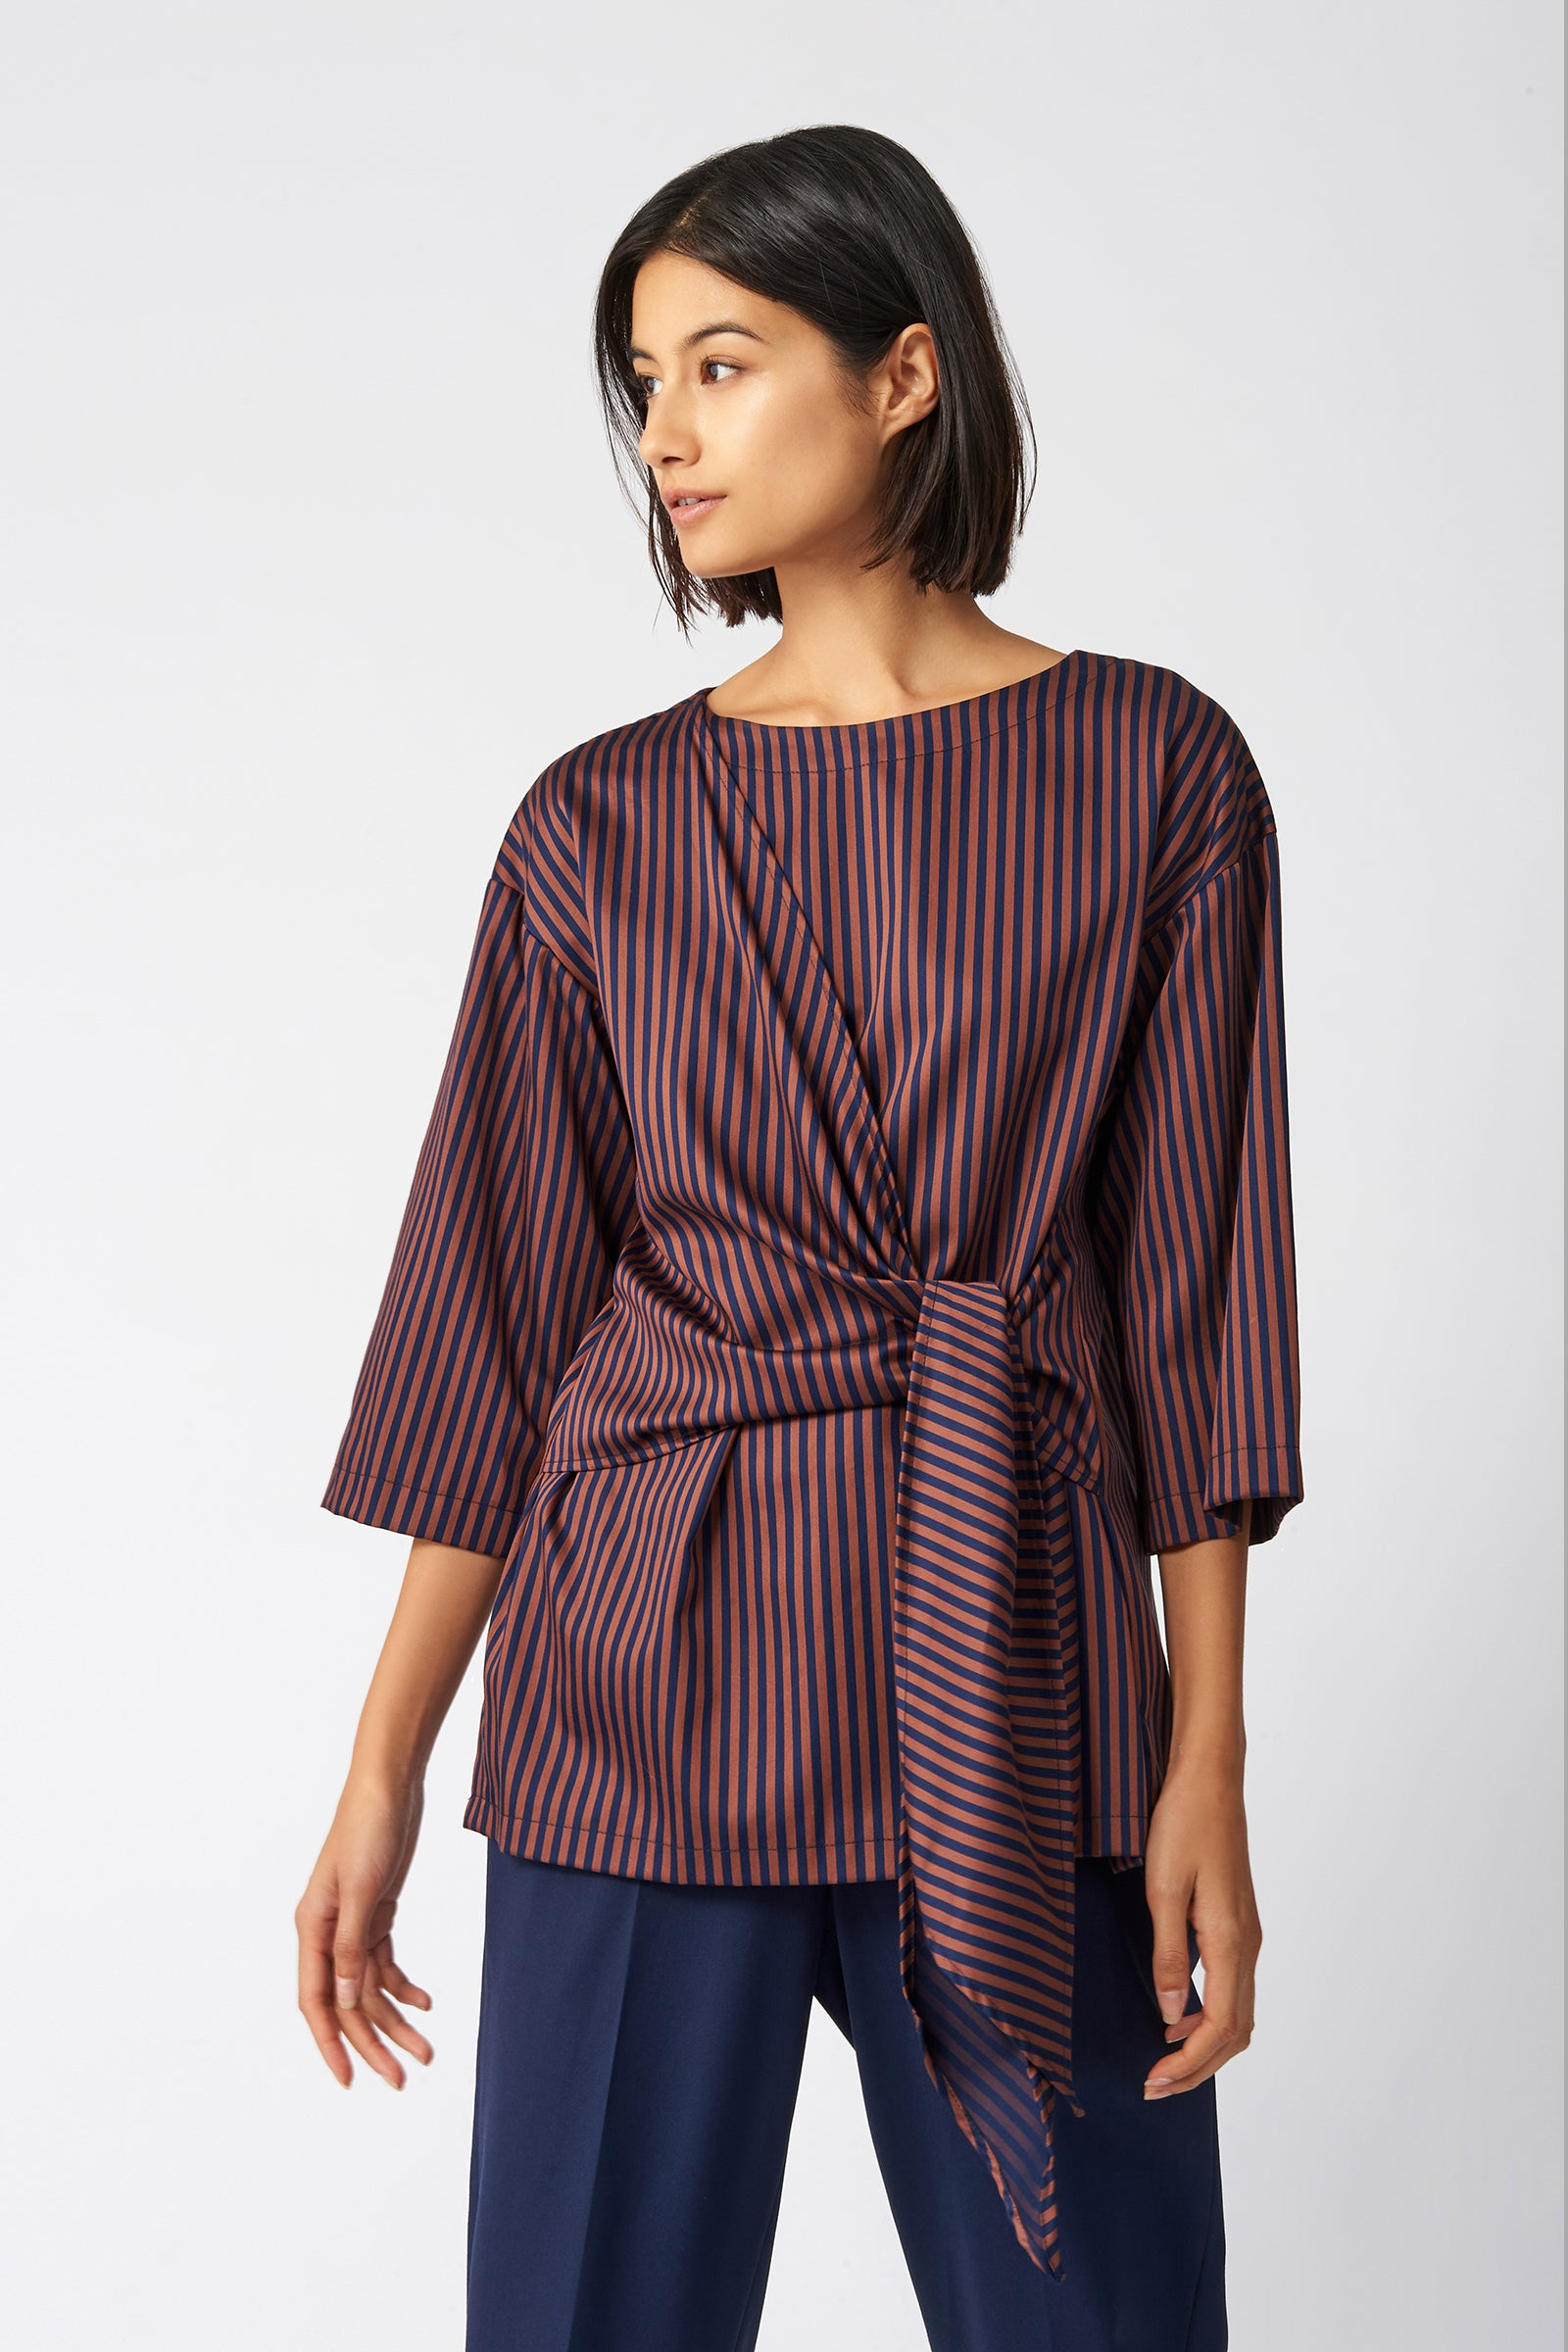 Kal Rieman Tie Front Tunic in Stripe on Model Front View